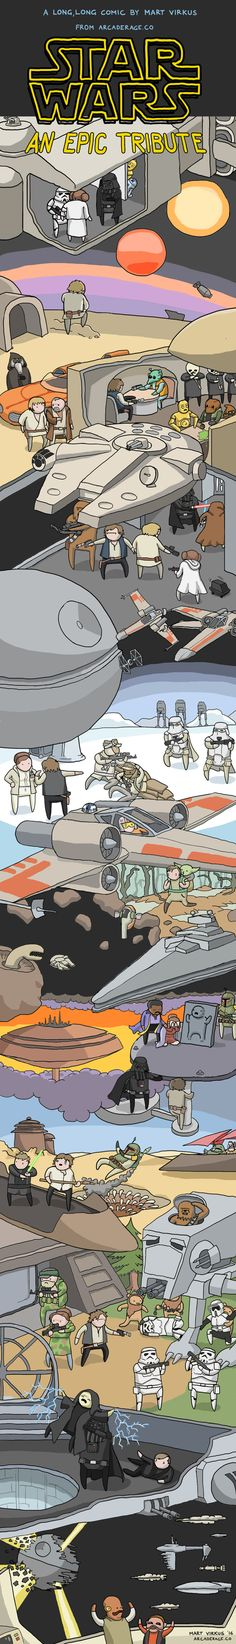 The Entire Star Wars Original Trilogy in One Big Comic http://geekxgirls.com/article.php?ID=8950